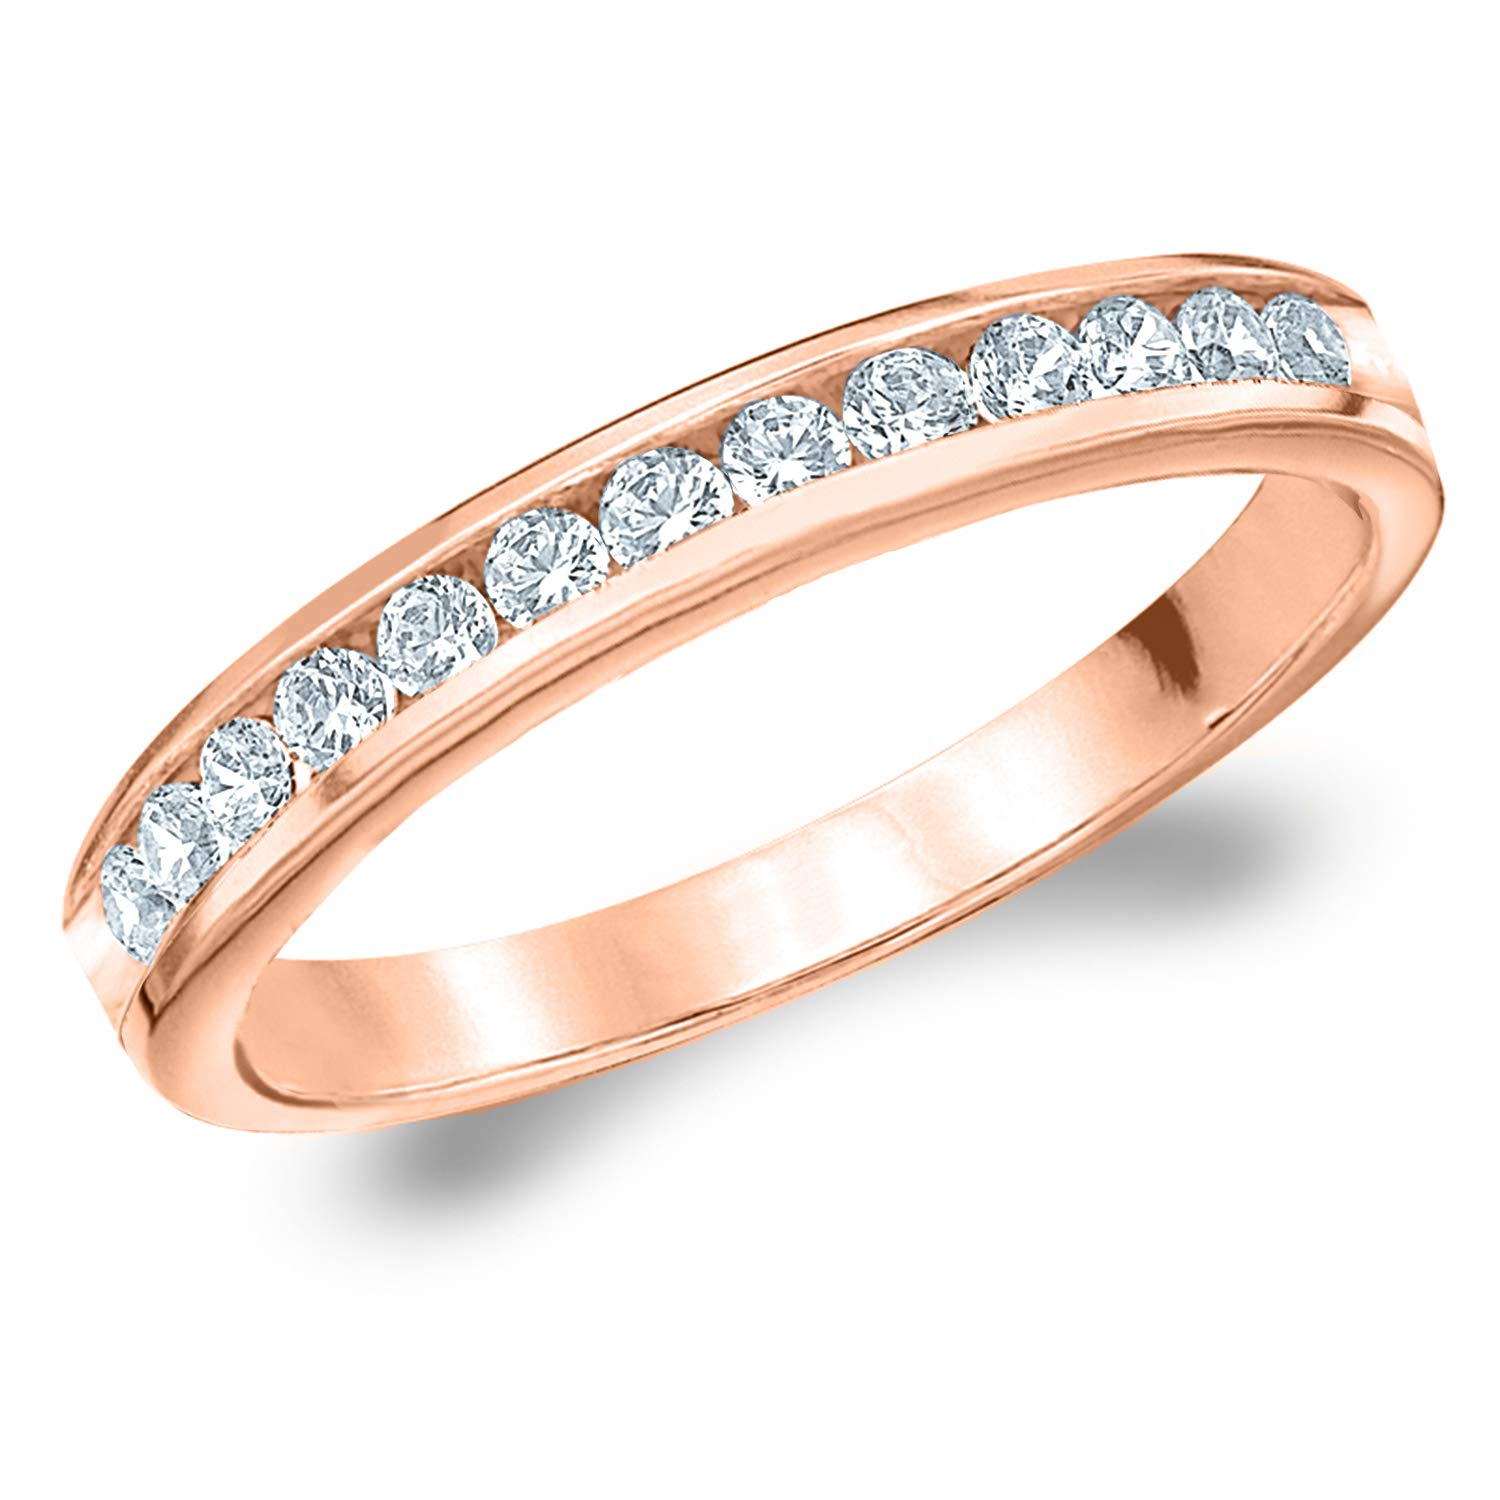 .25CT Symphony Channel Set Diamond Wedding Ring in 14K Rose Gold - Finger Size 6.5 by Eternity Wedding Bands